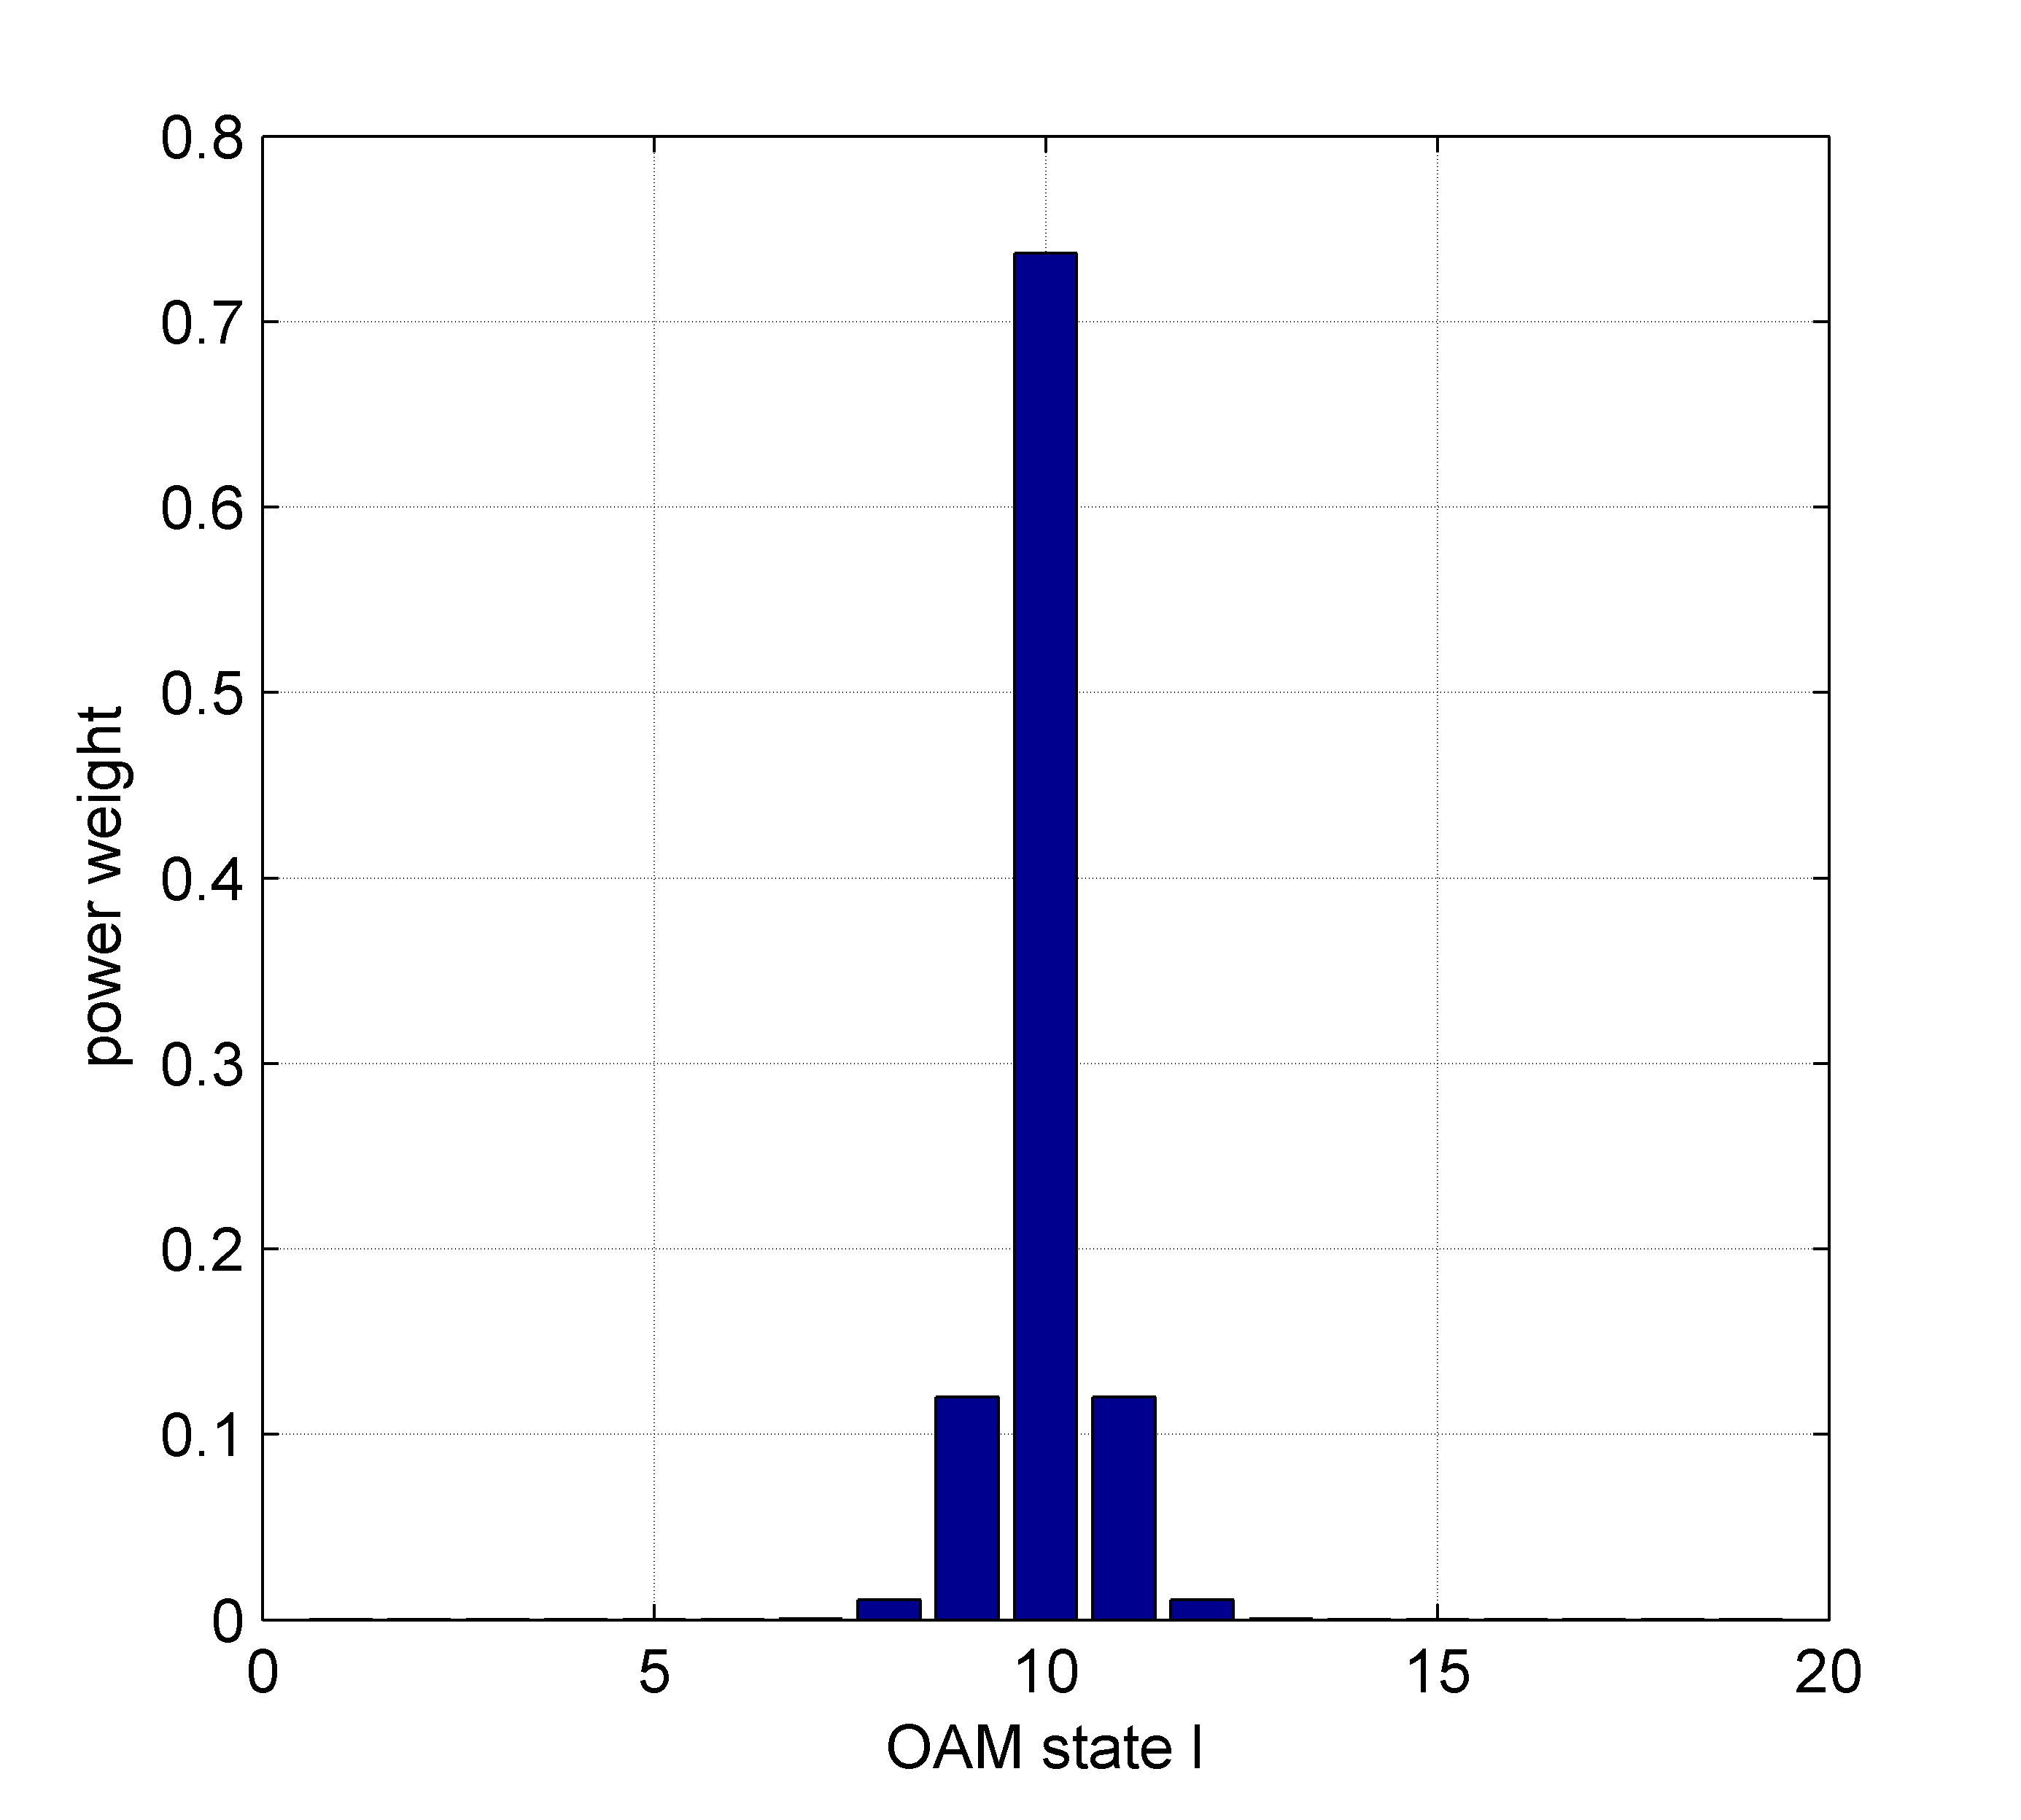 The power weight of the emitted OAM state spread into the adjacent OAM states.